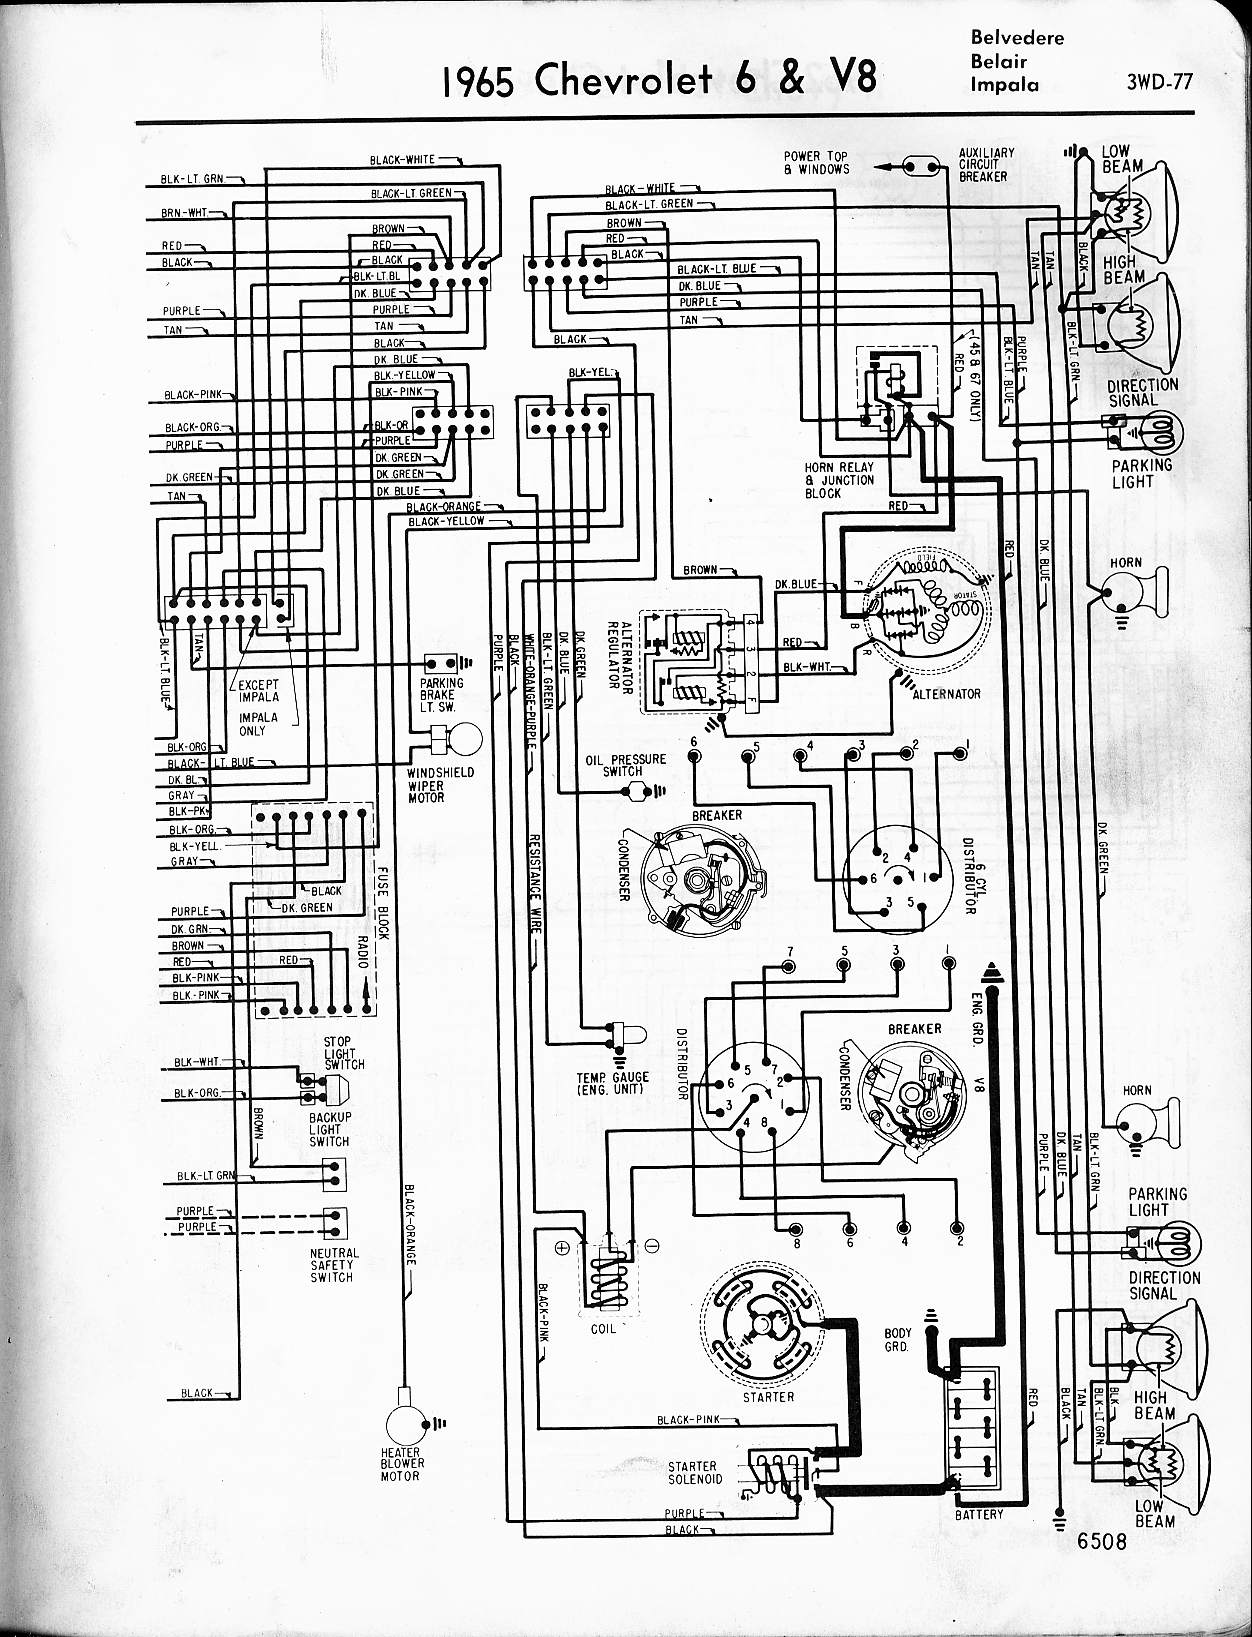 MWireChev65_3WD 077 57 65 chevy wiring diagrams 1962 impala wiring diagram at honlapkeszites.co